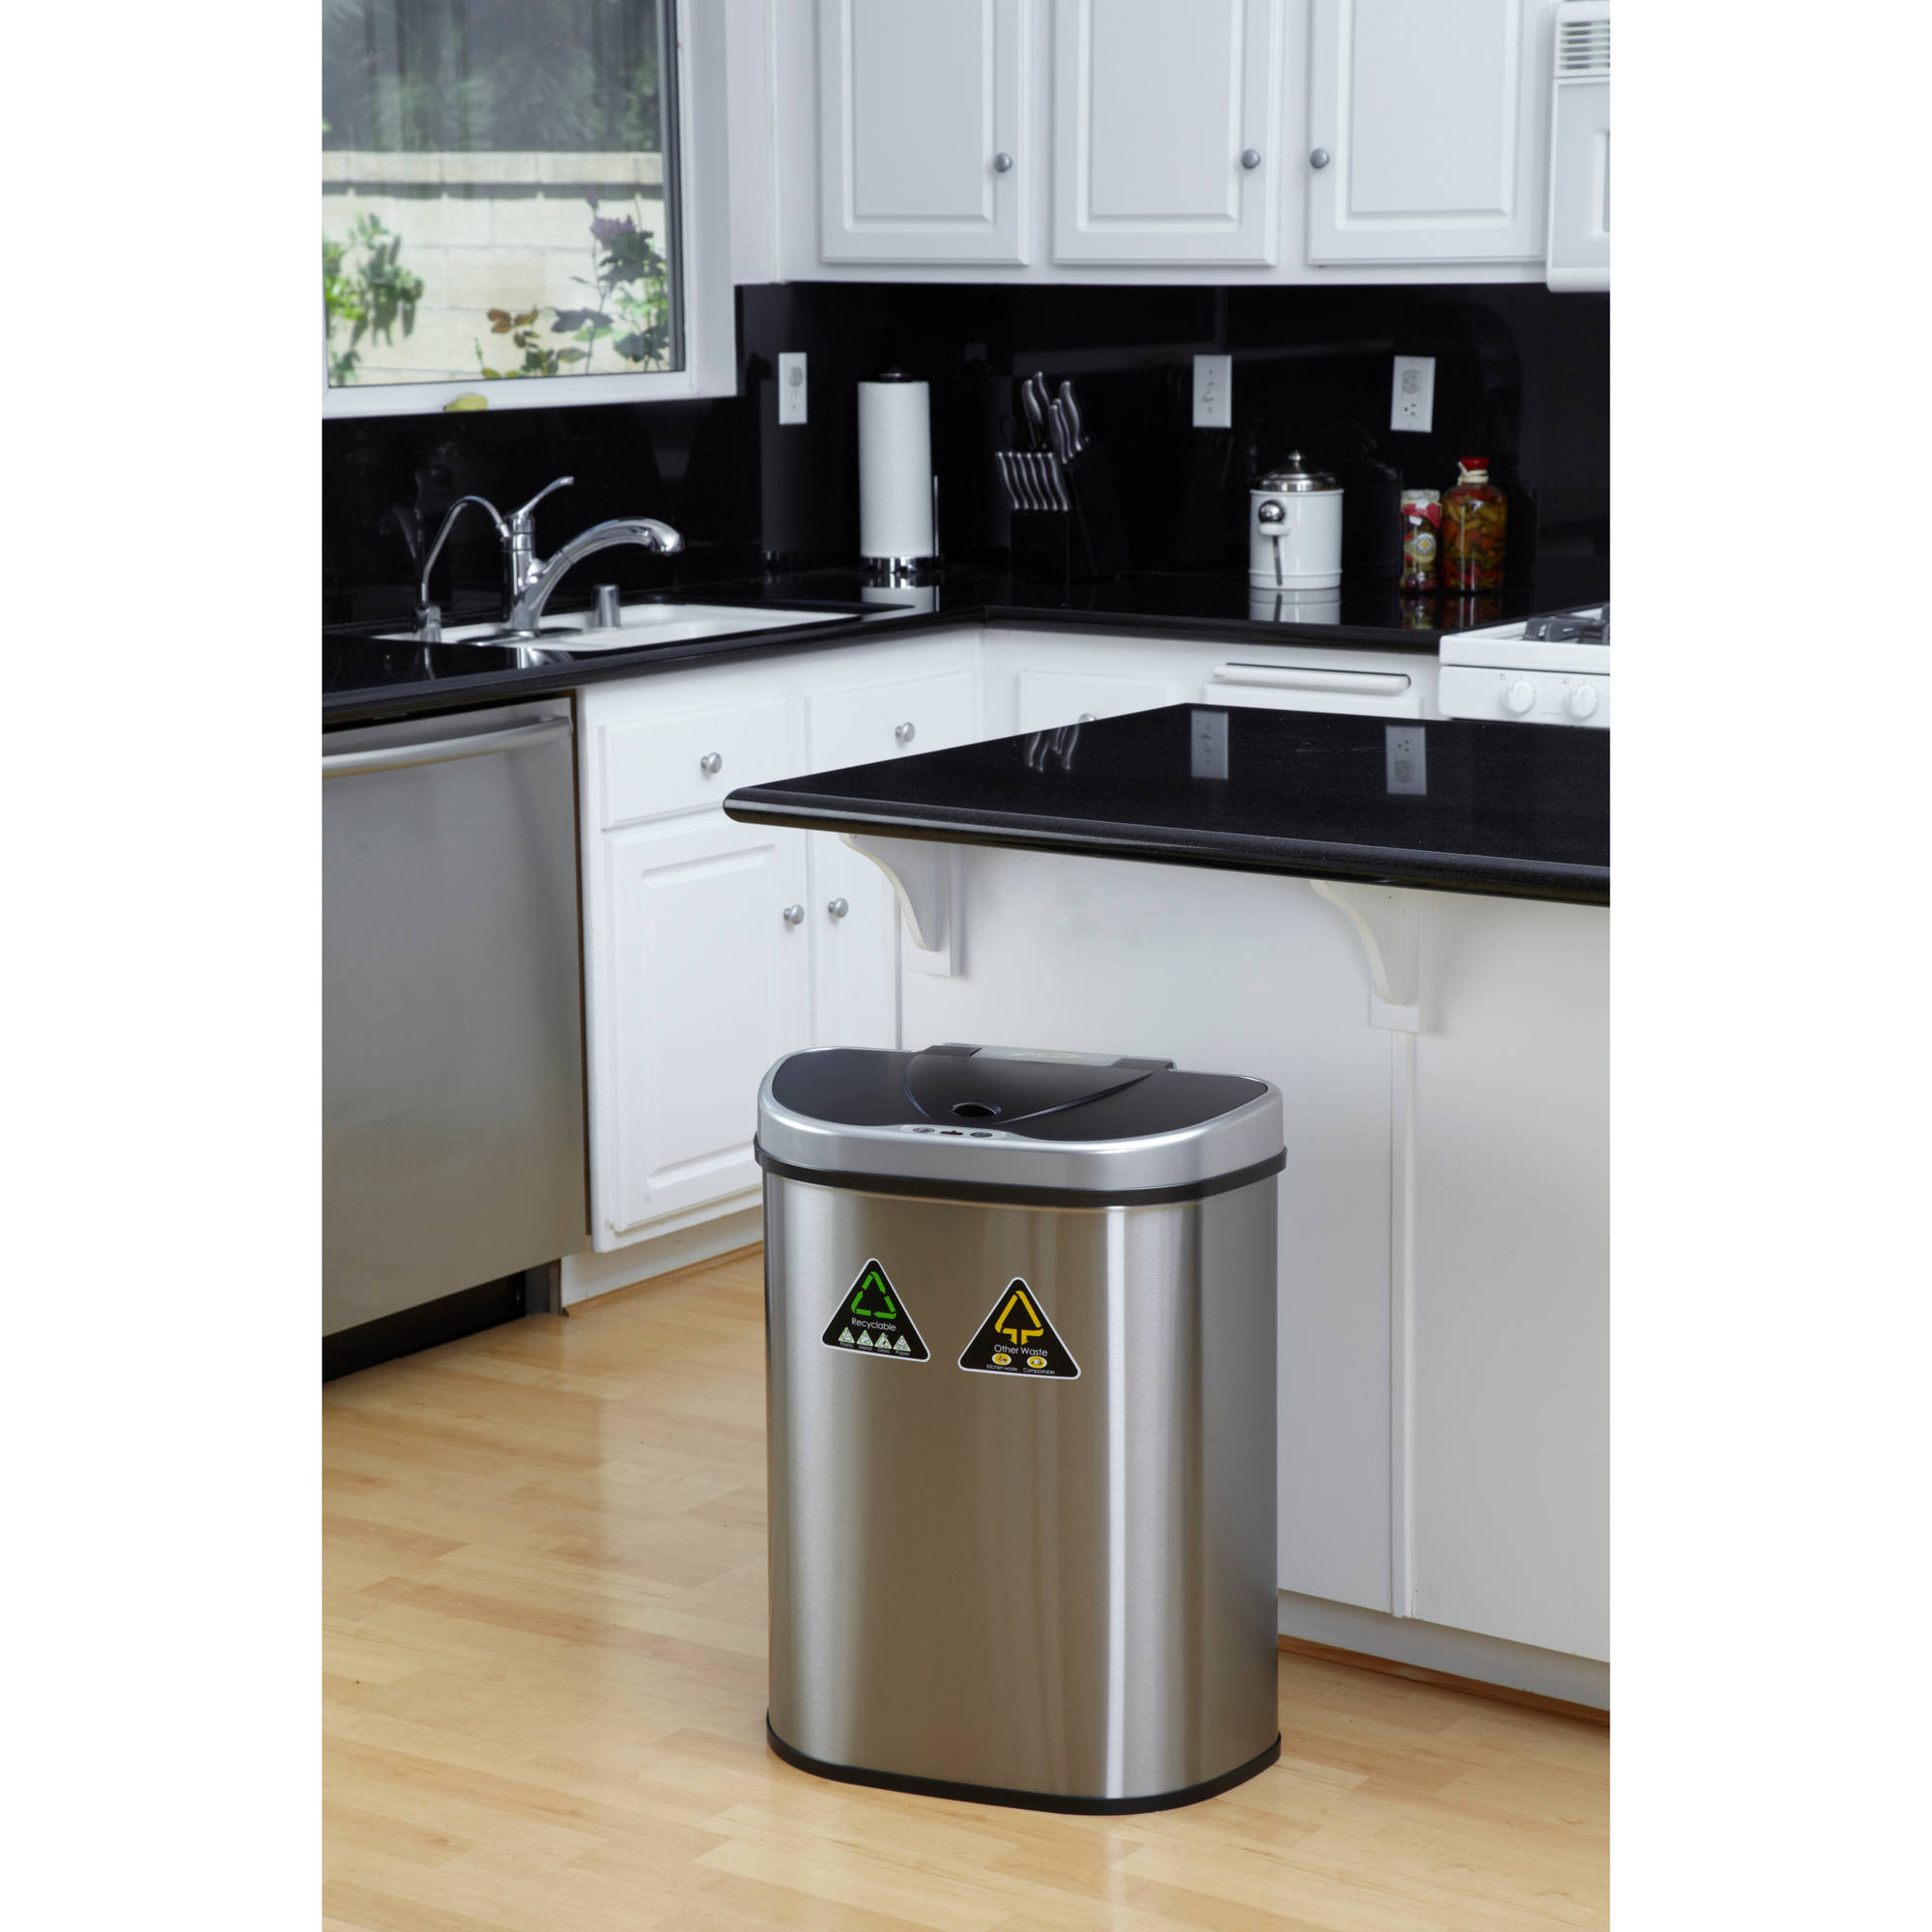 Nine Stars 18.5-Gallon Motion Sensor Recycle Unit and Trash Can, Stainless Steel